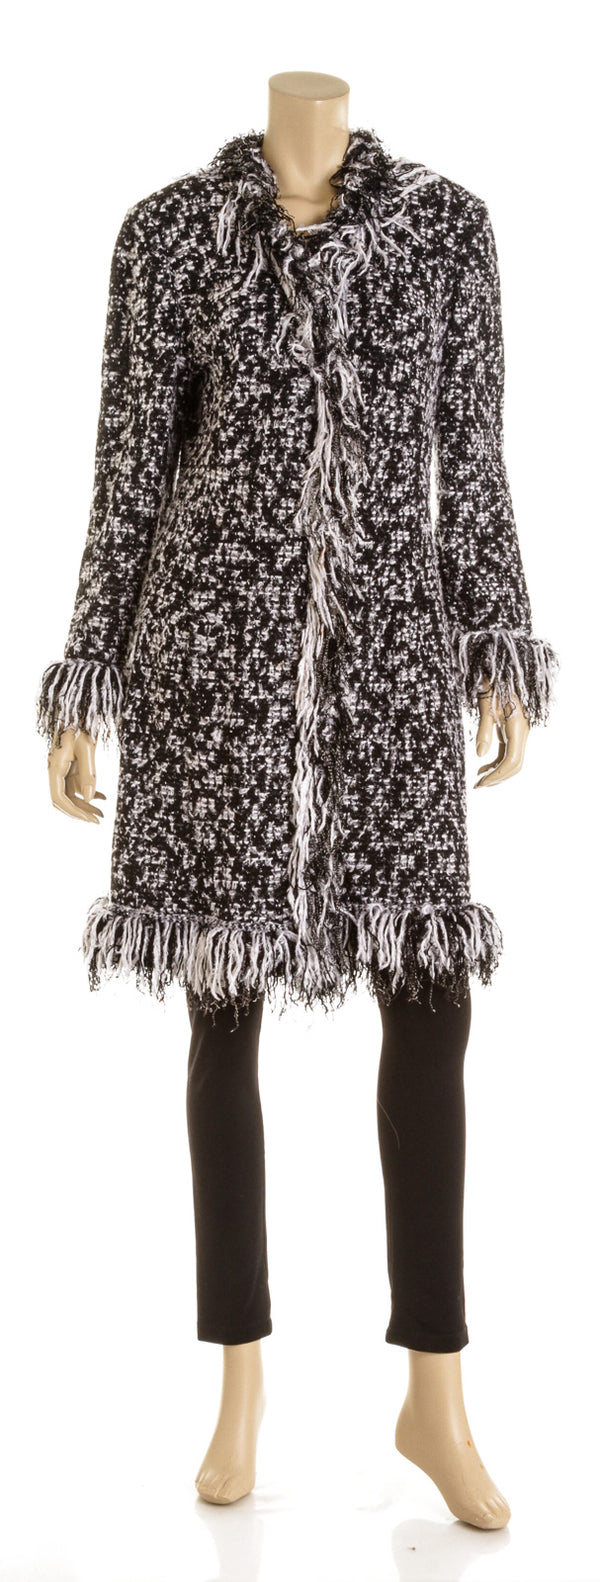 St John Black & White Boucle Wool Fringe Coat ( Size 14)